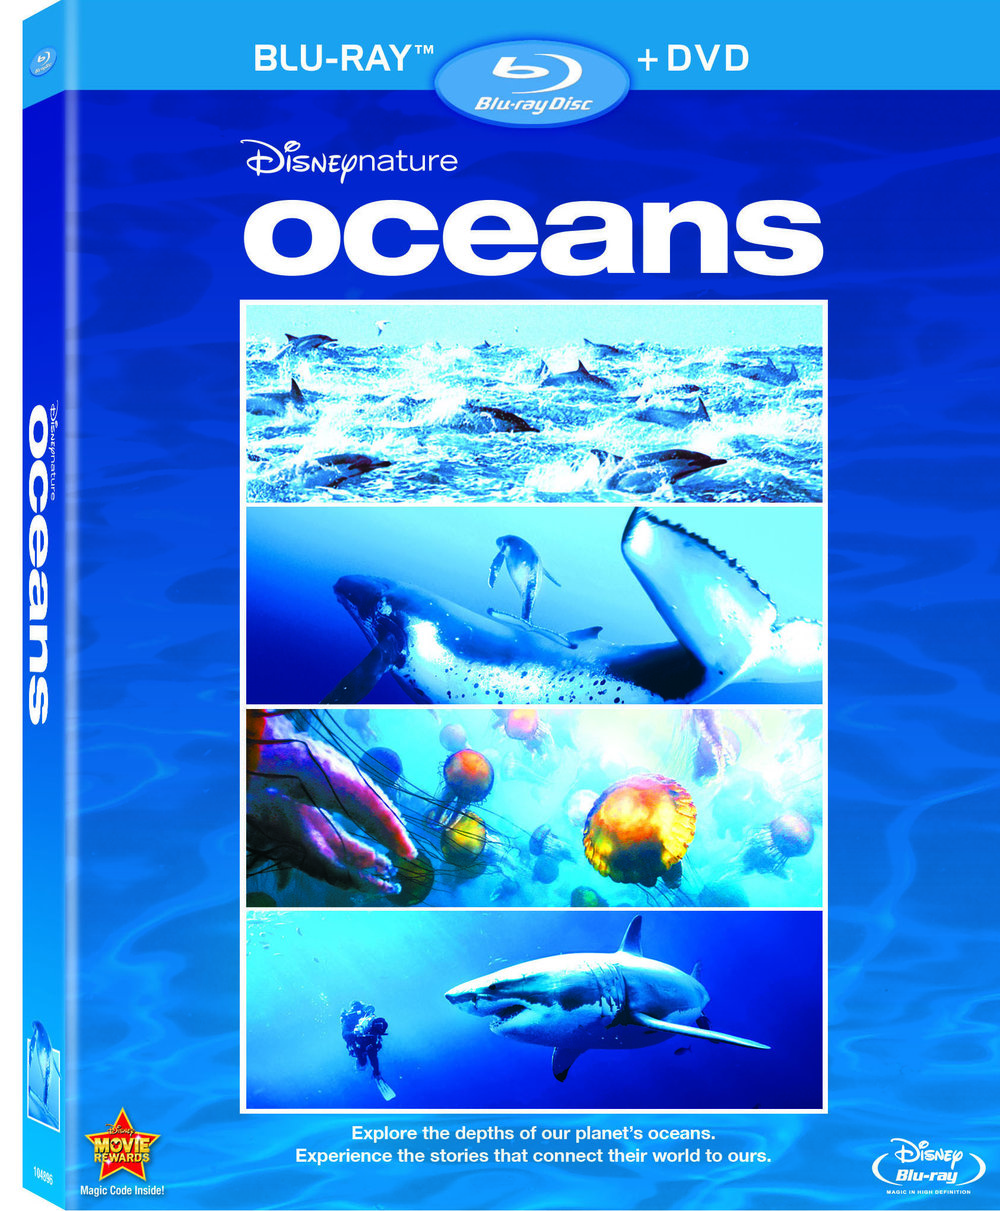 Disney-Nature-Oceans-Bluray-Combo-Art.jpg